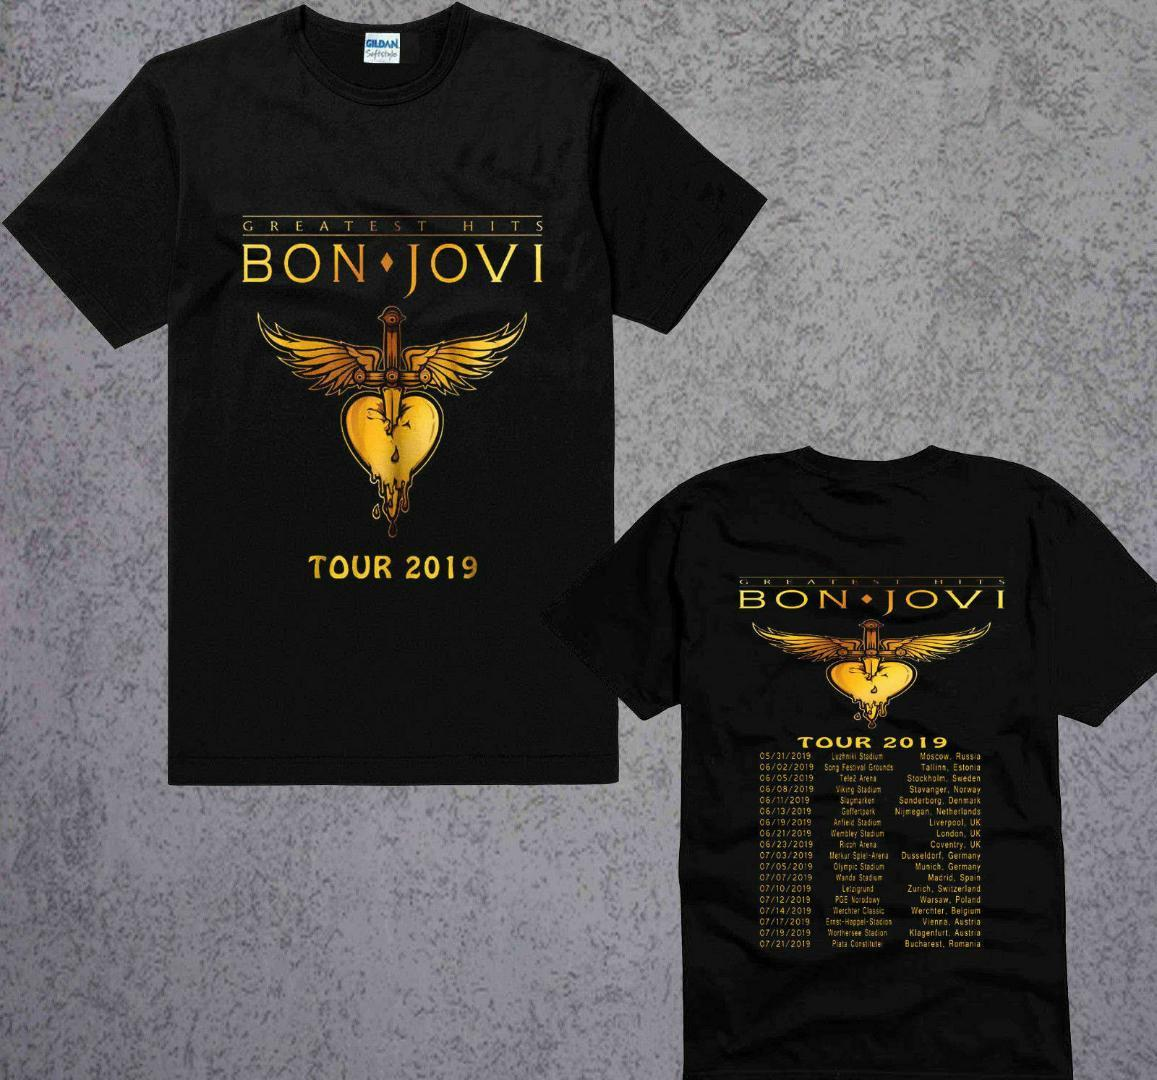 Nuevo Bon Jovi The Ressurection Music World Tour 2019 Camiseta negra S a 3XL Camiseta de algodón de manga corta de verano Moda